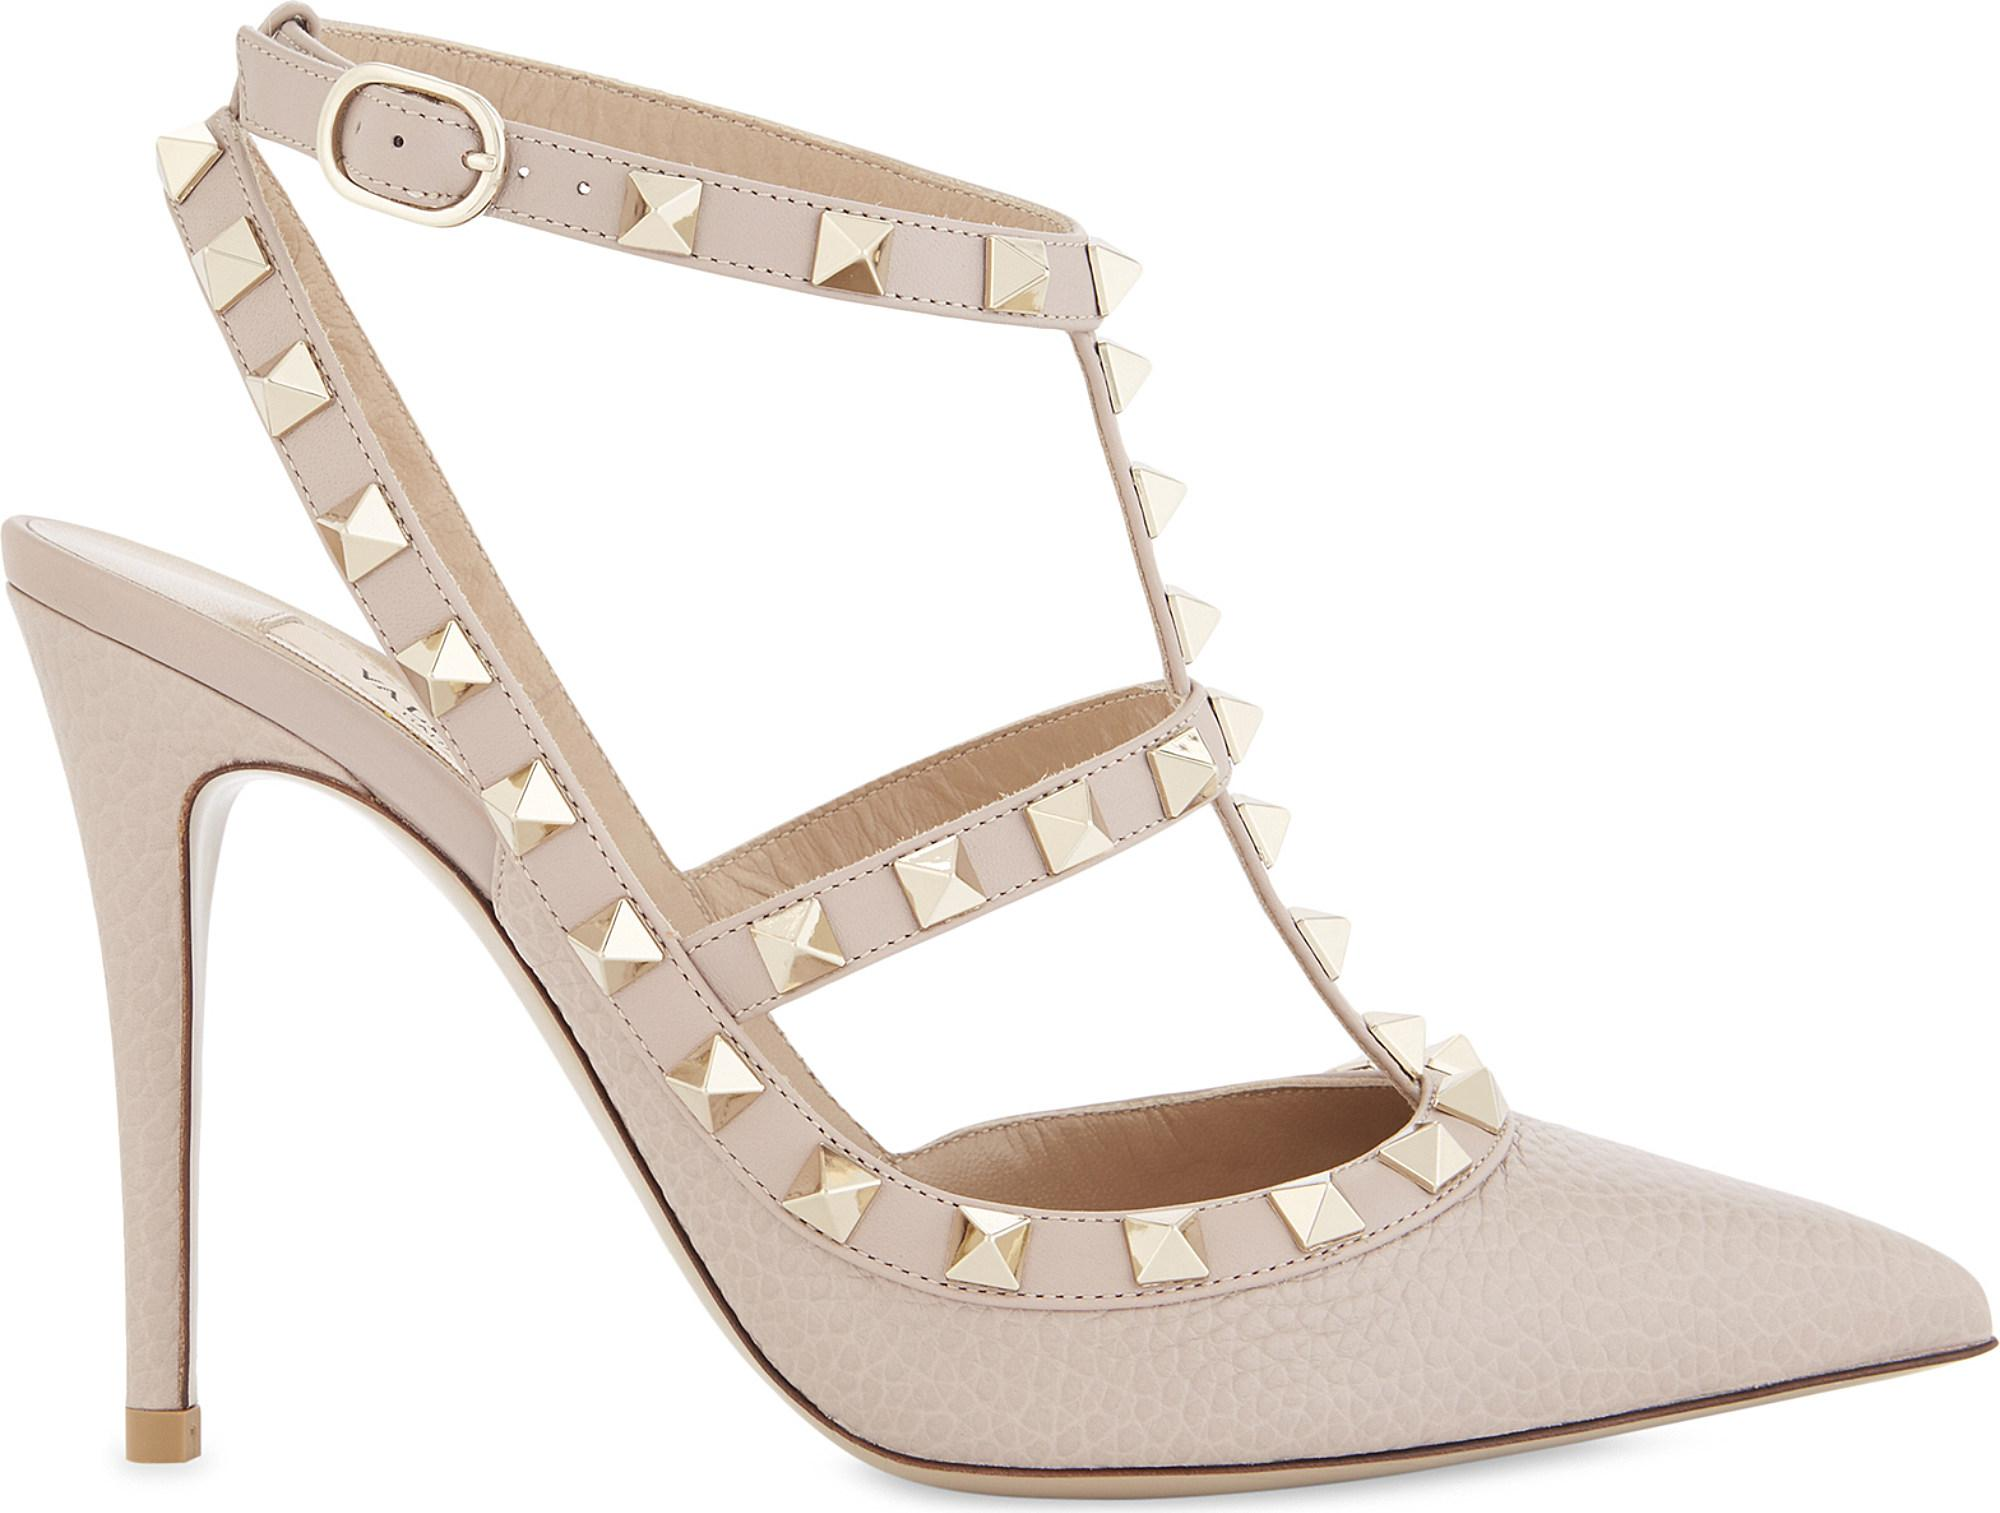 784adb96651 Lyst - Valentino Rockstud 100 Leather Courts in Metallic